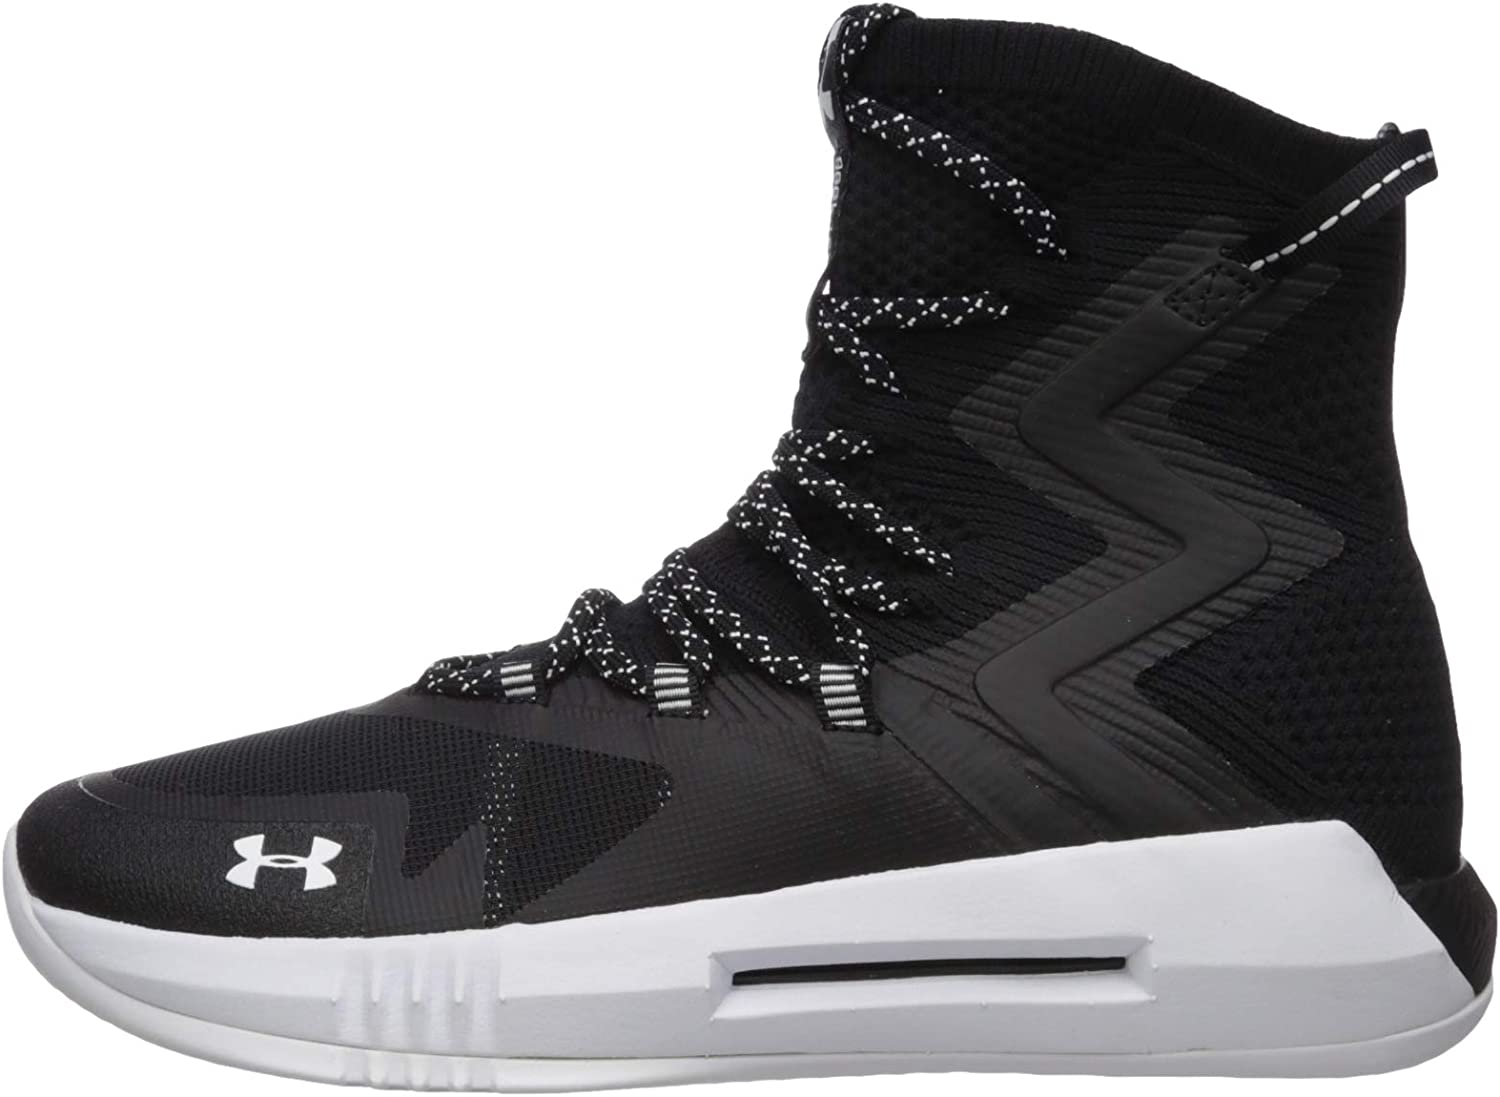 Under Armour Mens Highlight Ace 2.0 Volleyball Shoe